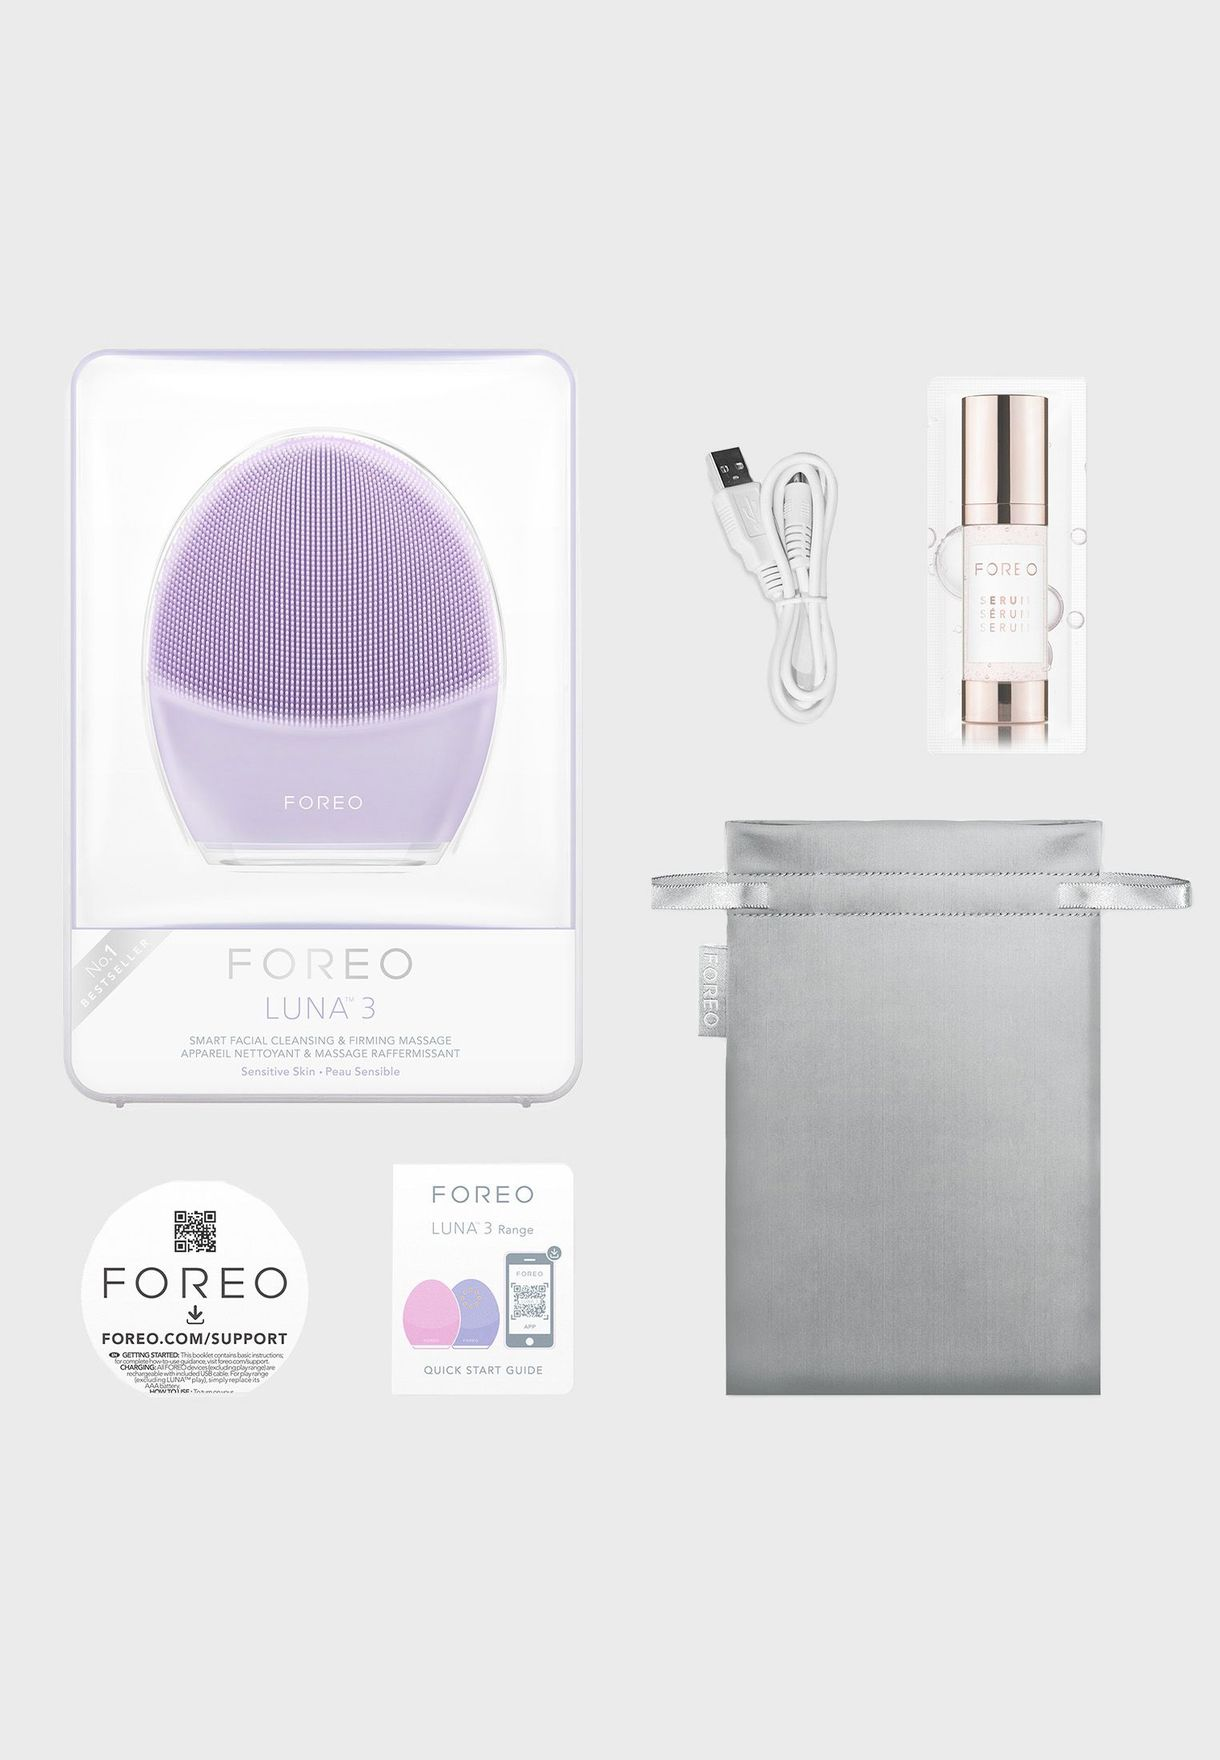 LUNA 3 Facial Cleansing Brush For Sensitive Skin